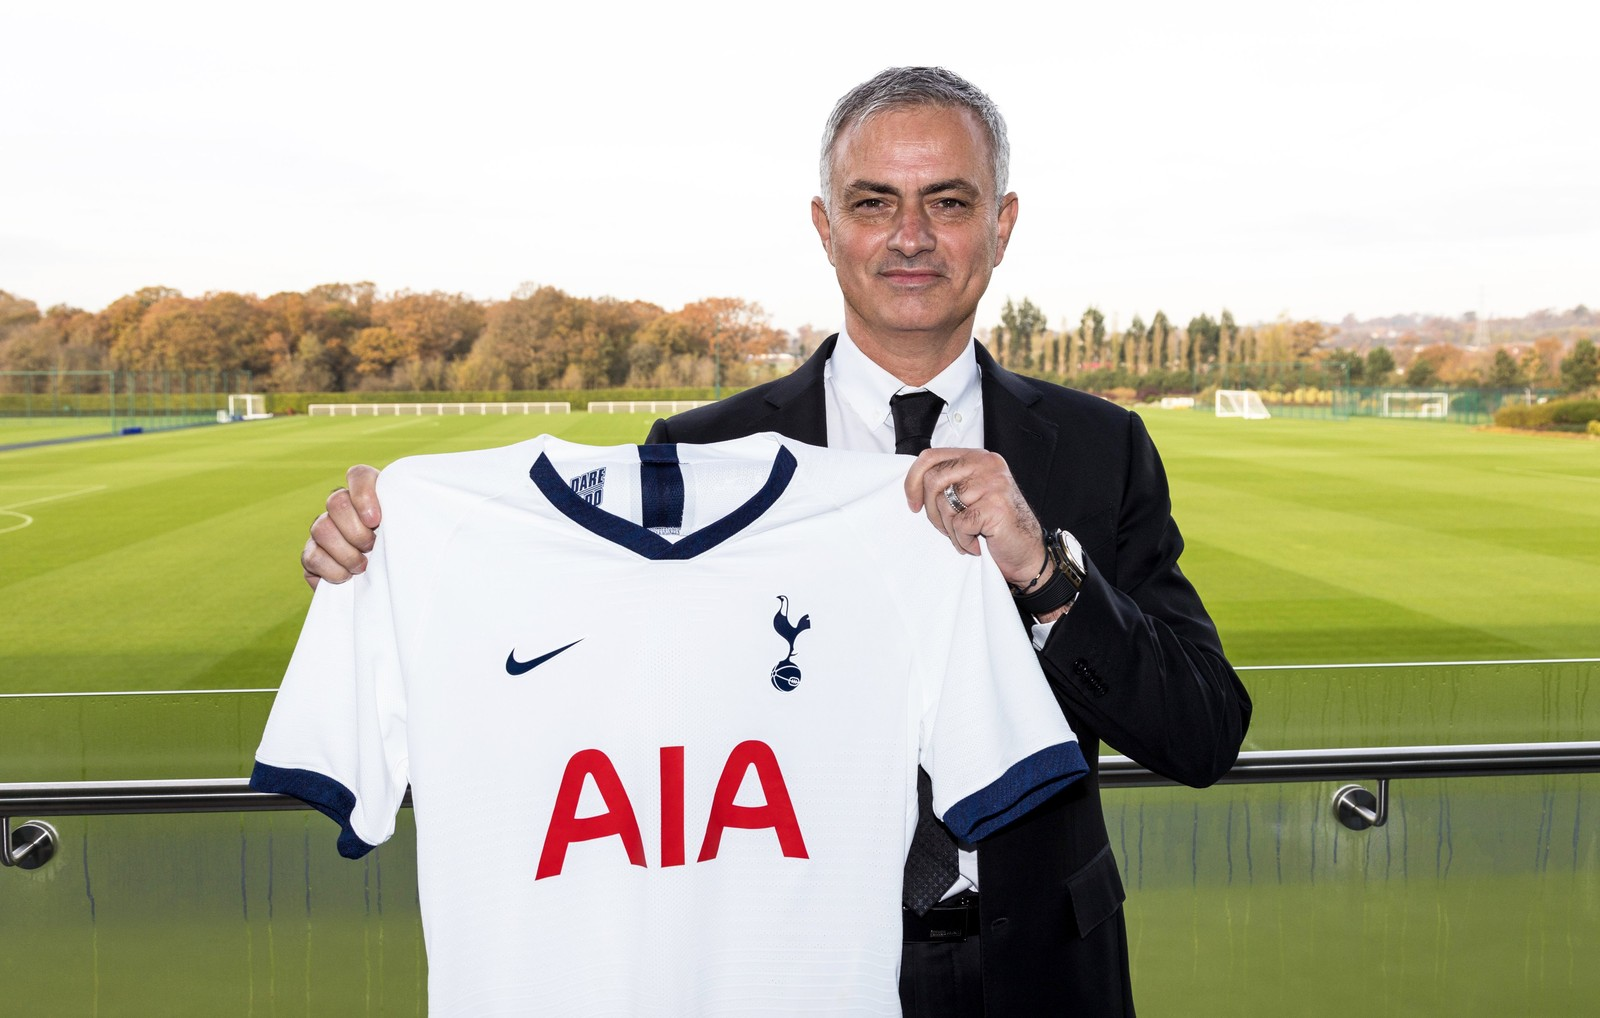 Portuguese manager Jose Mourinho being presented as Tottenham Hotspur's new boss in November 2019